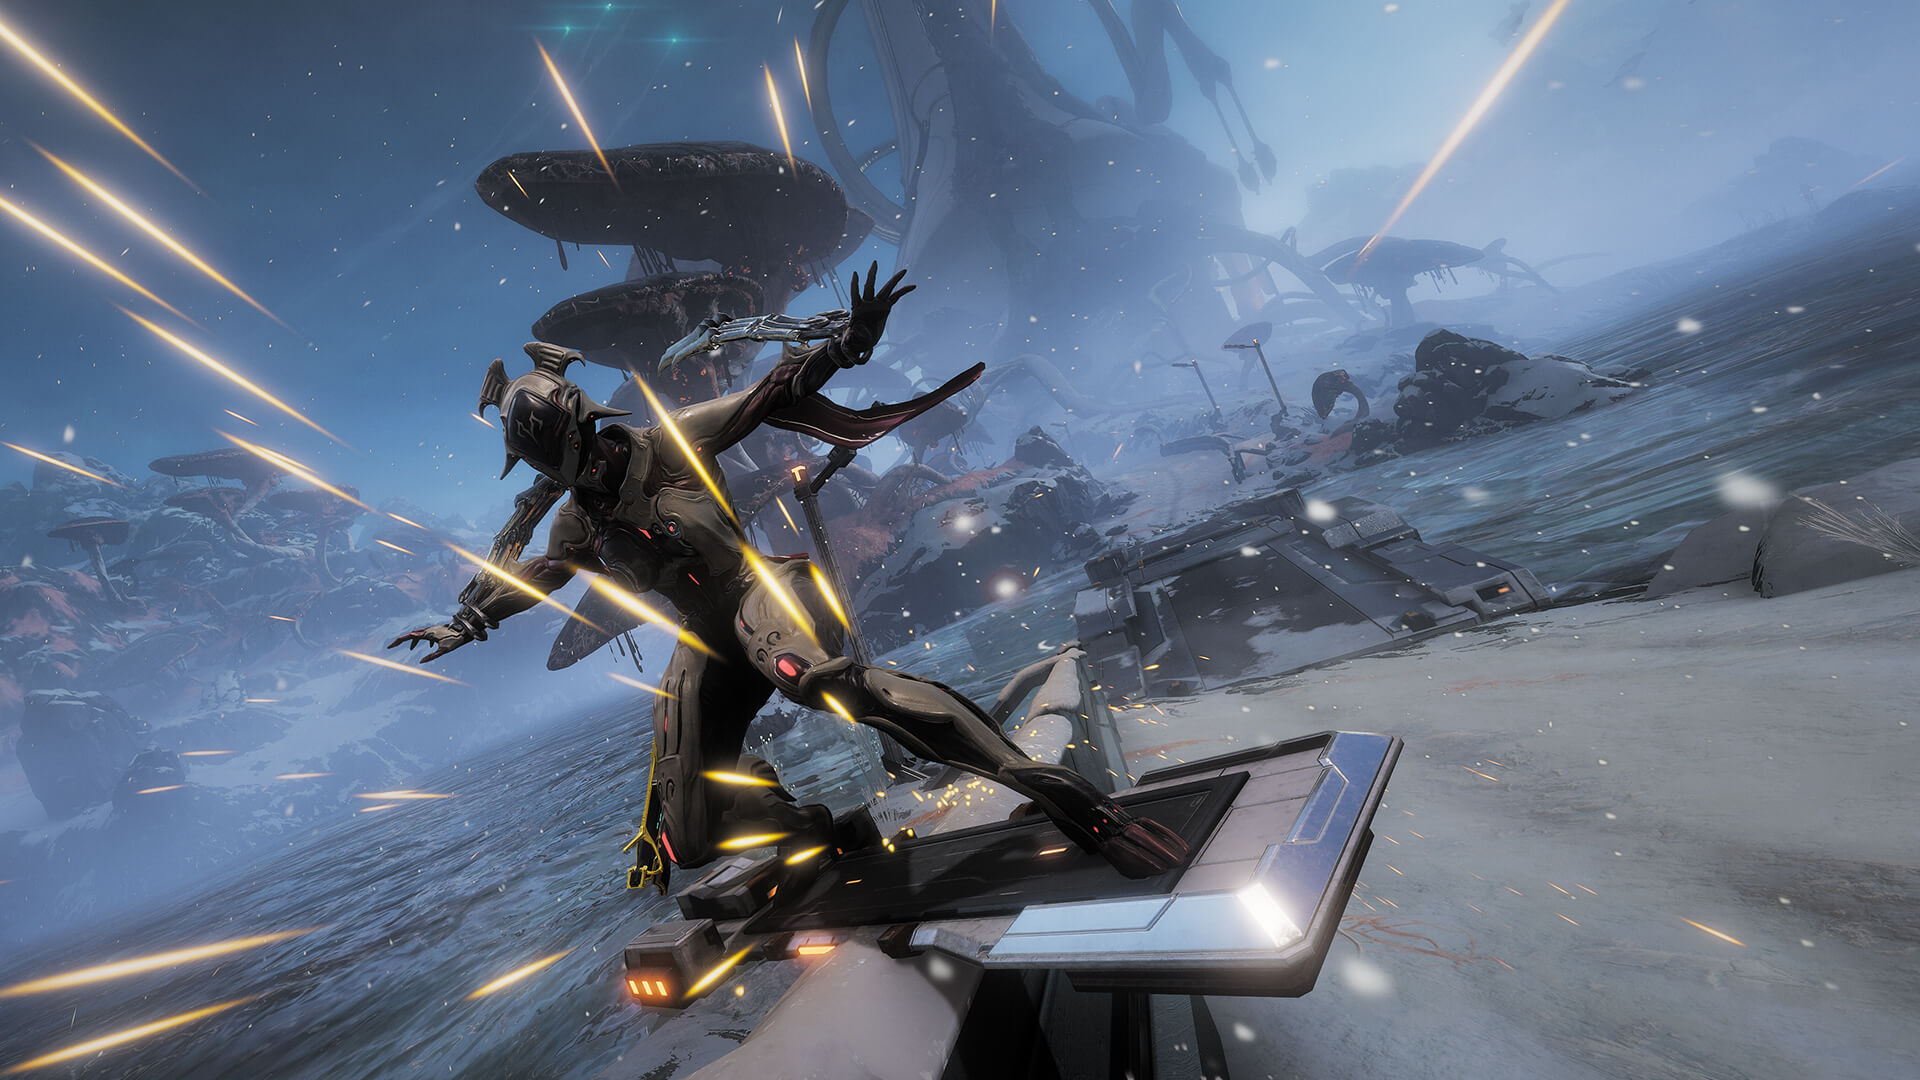 Find the best laptop for Warframe